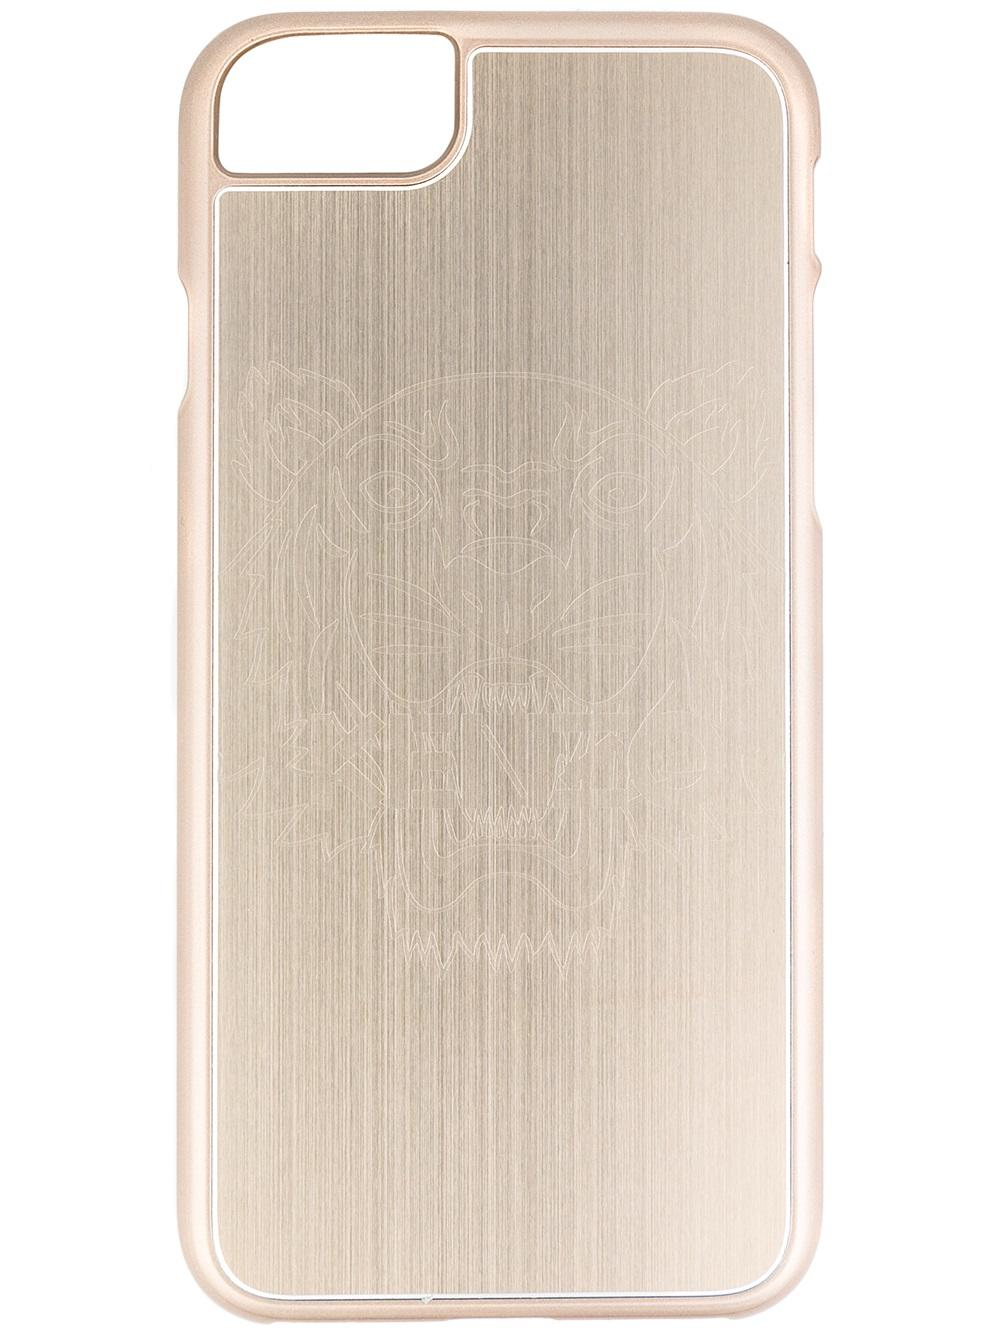 Kenzo coque d iPhone 6 Tiger Homme Lifestyle,bague kenzo tigre pas ... a1ca314a0aa